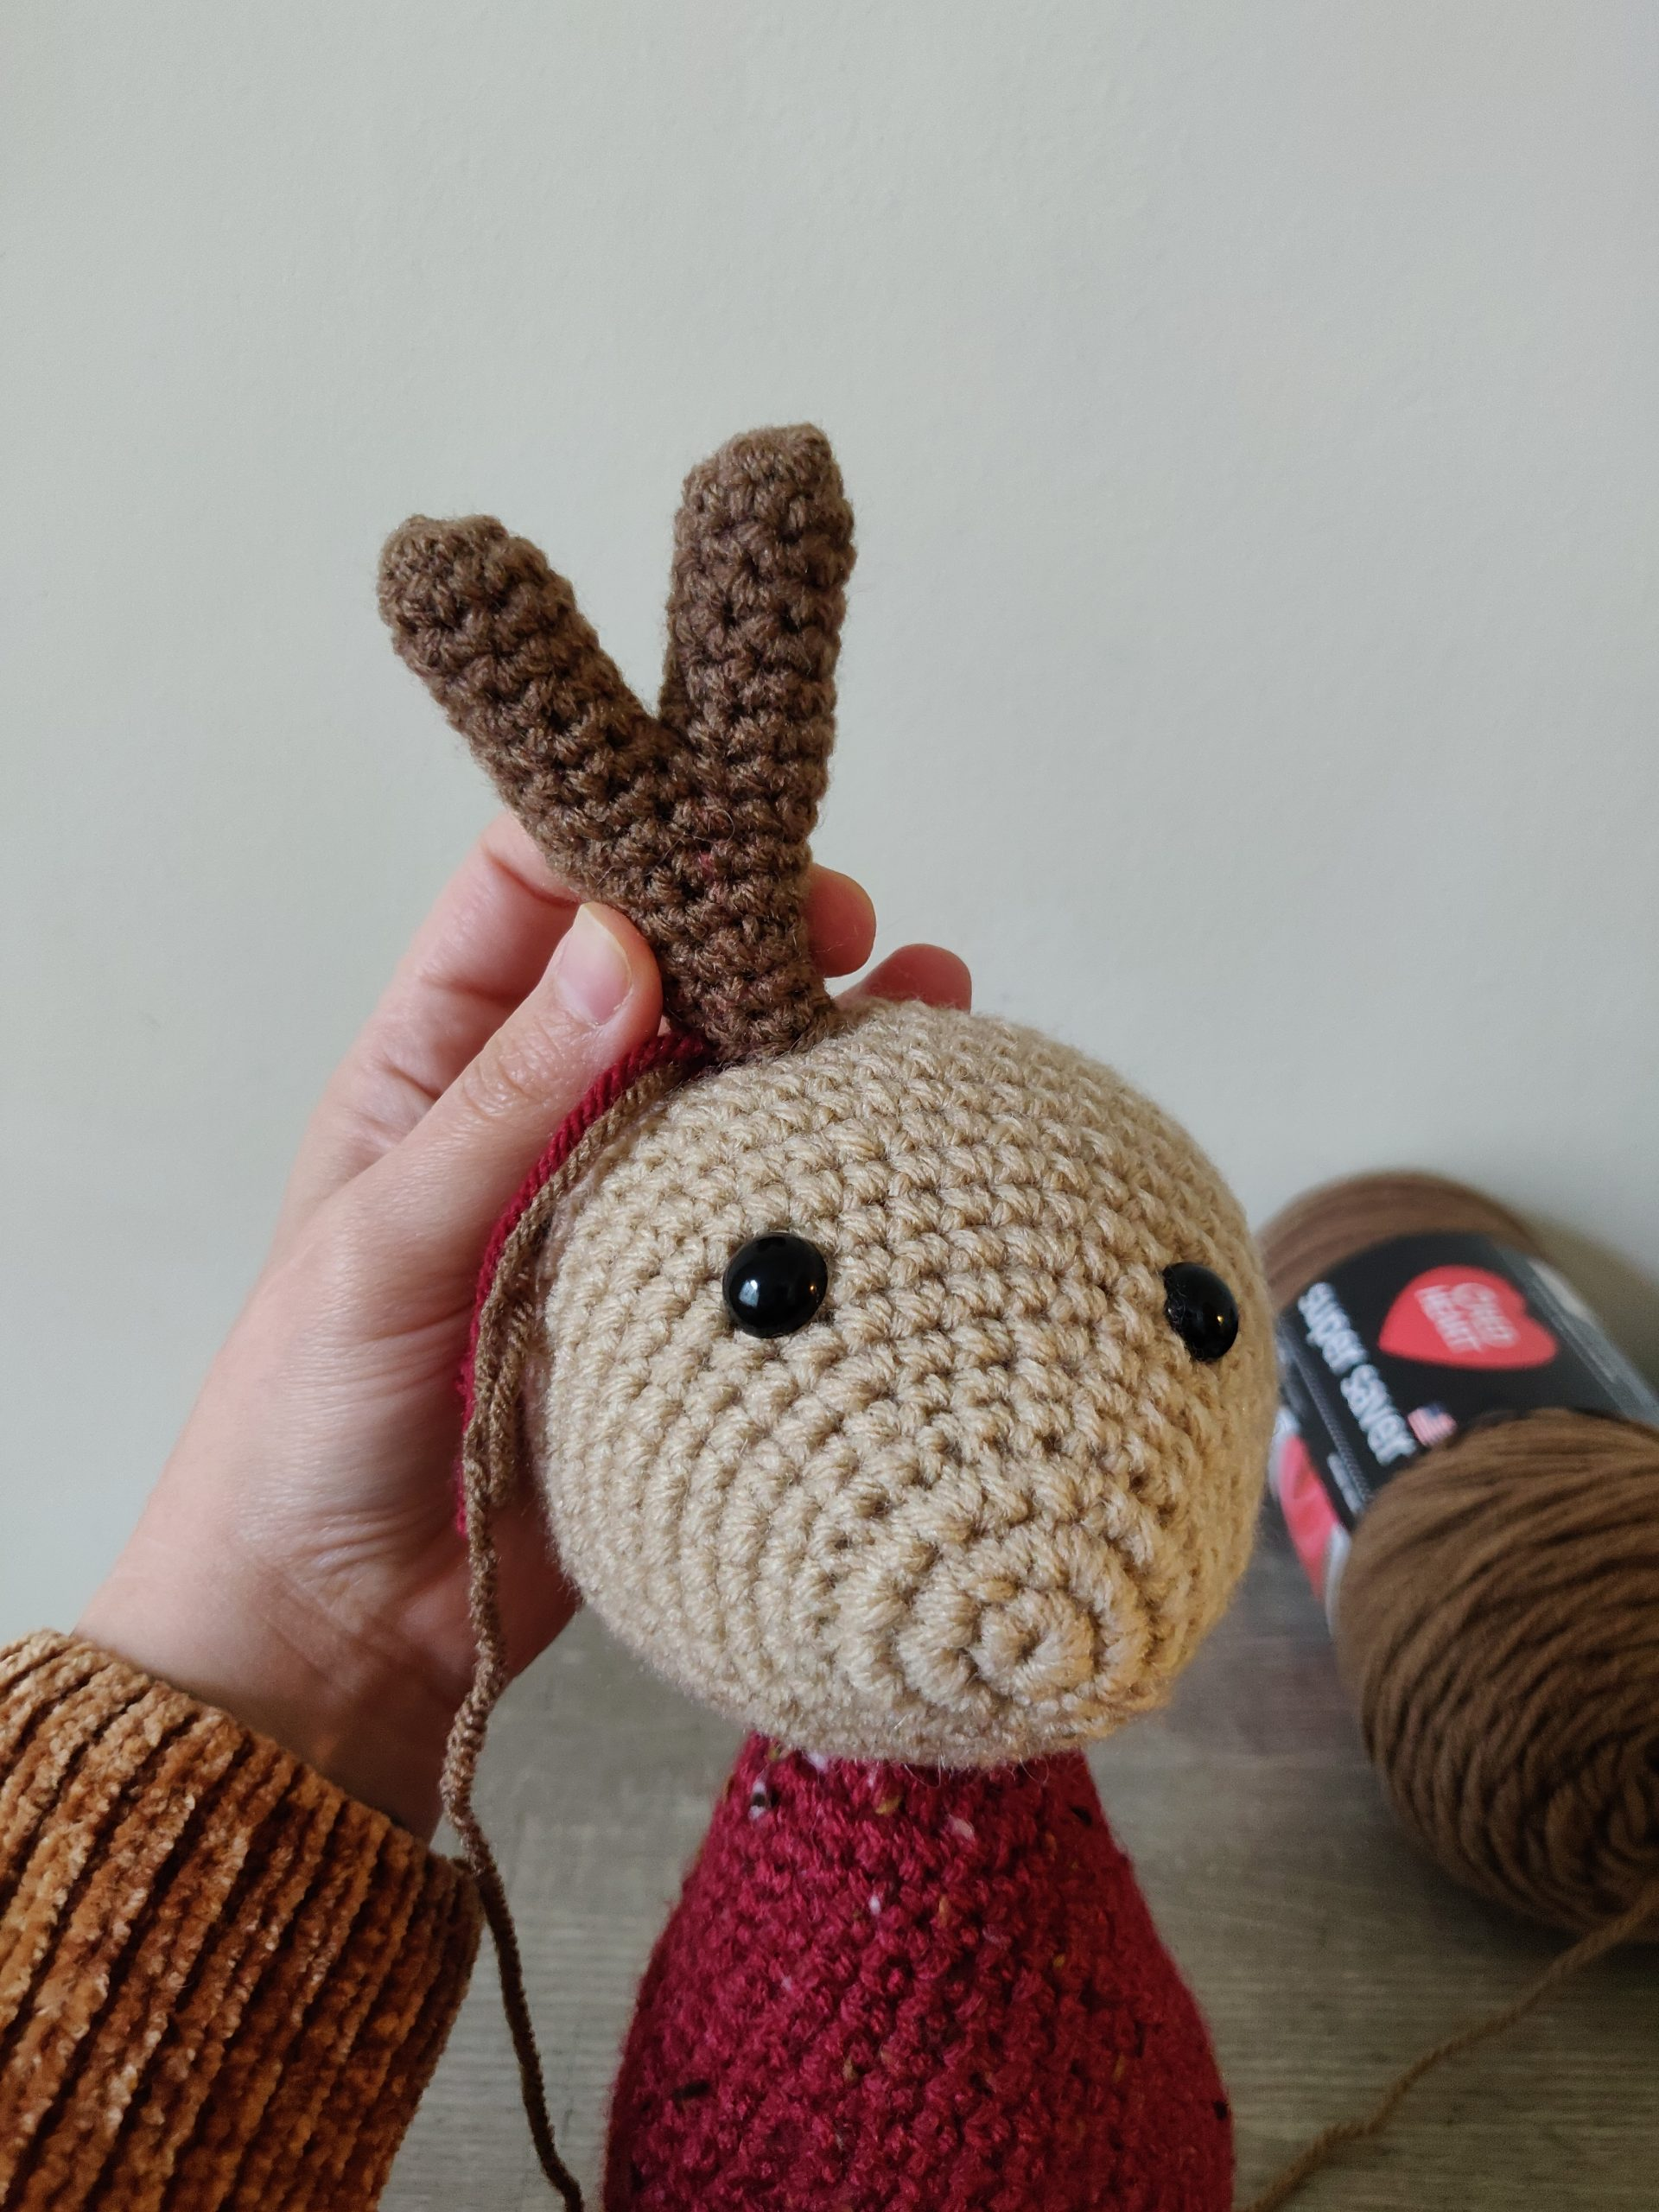 Crochet antlers on crochet reindeer.